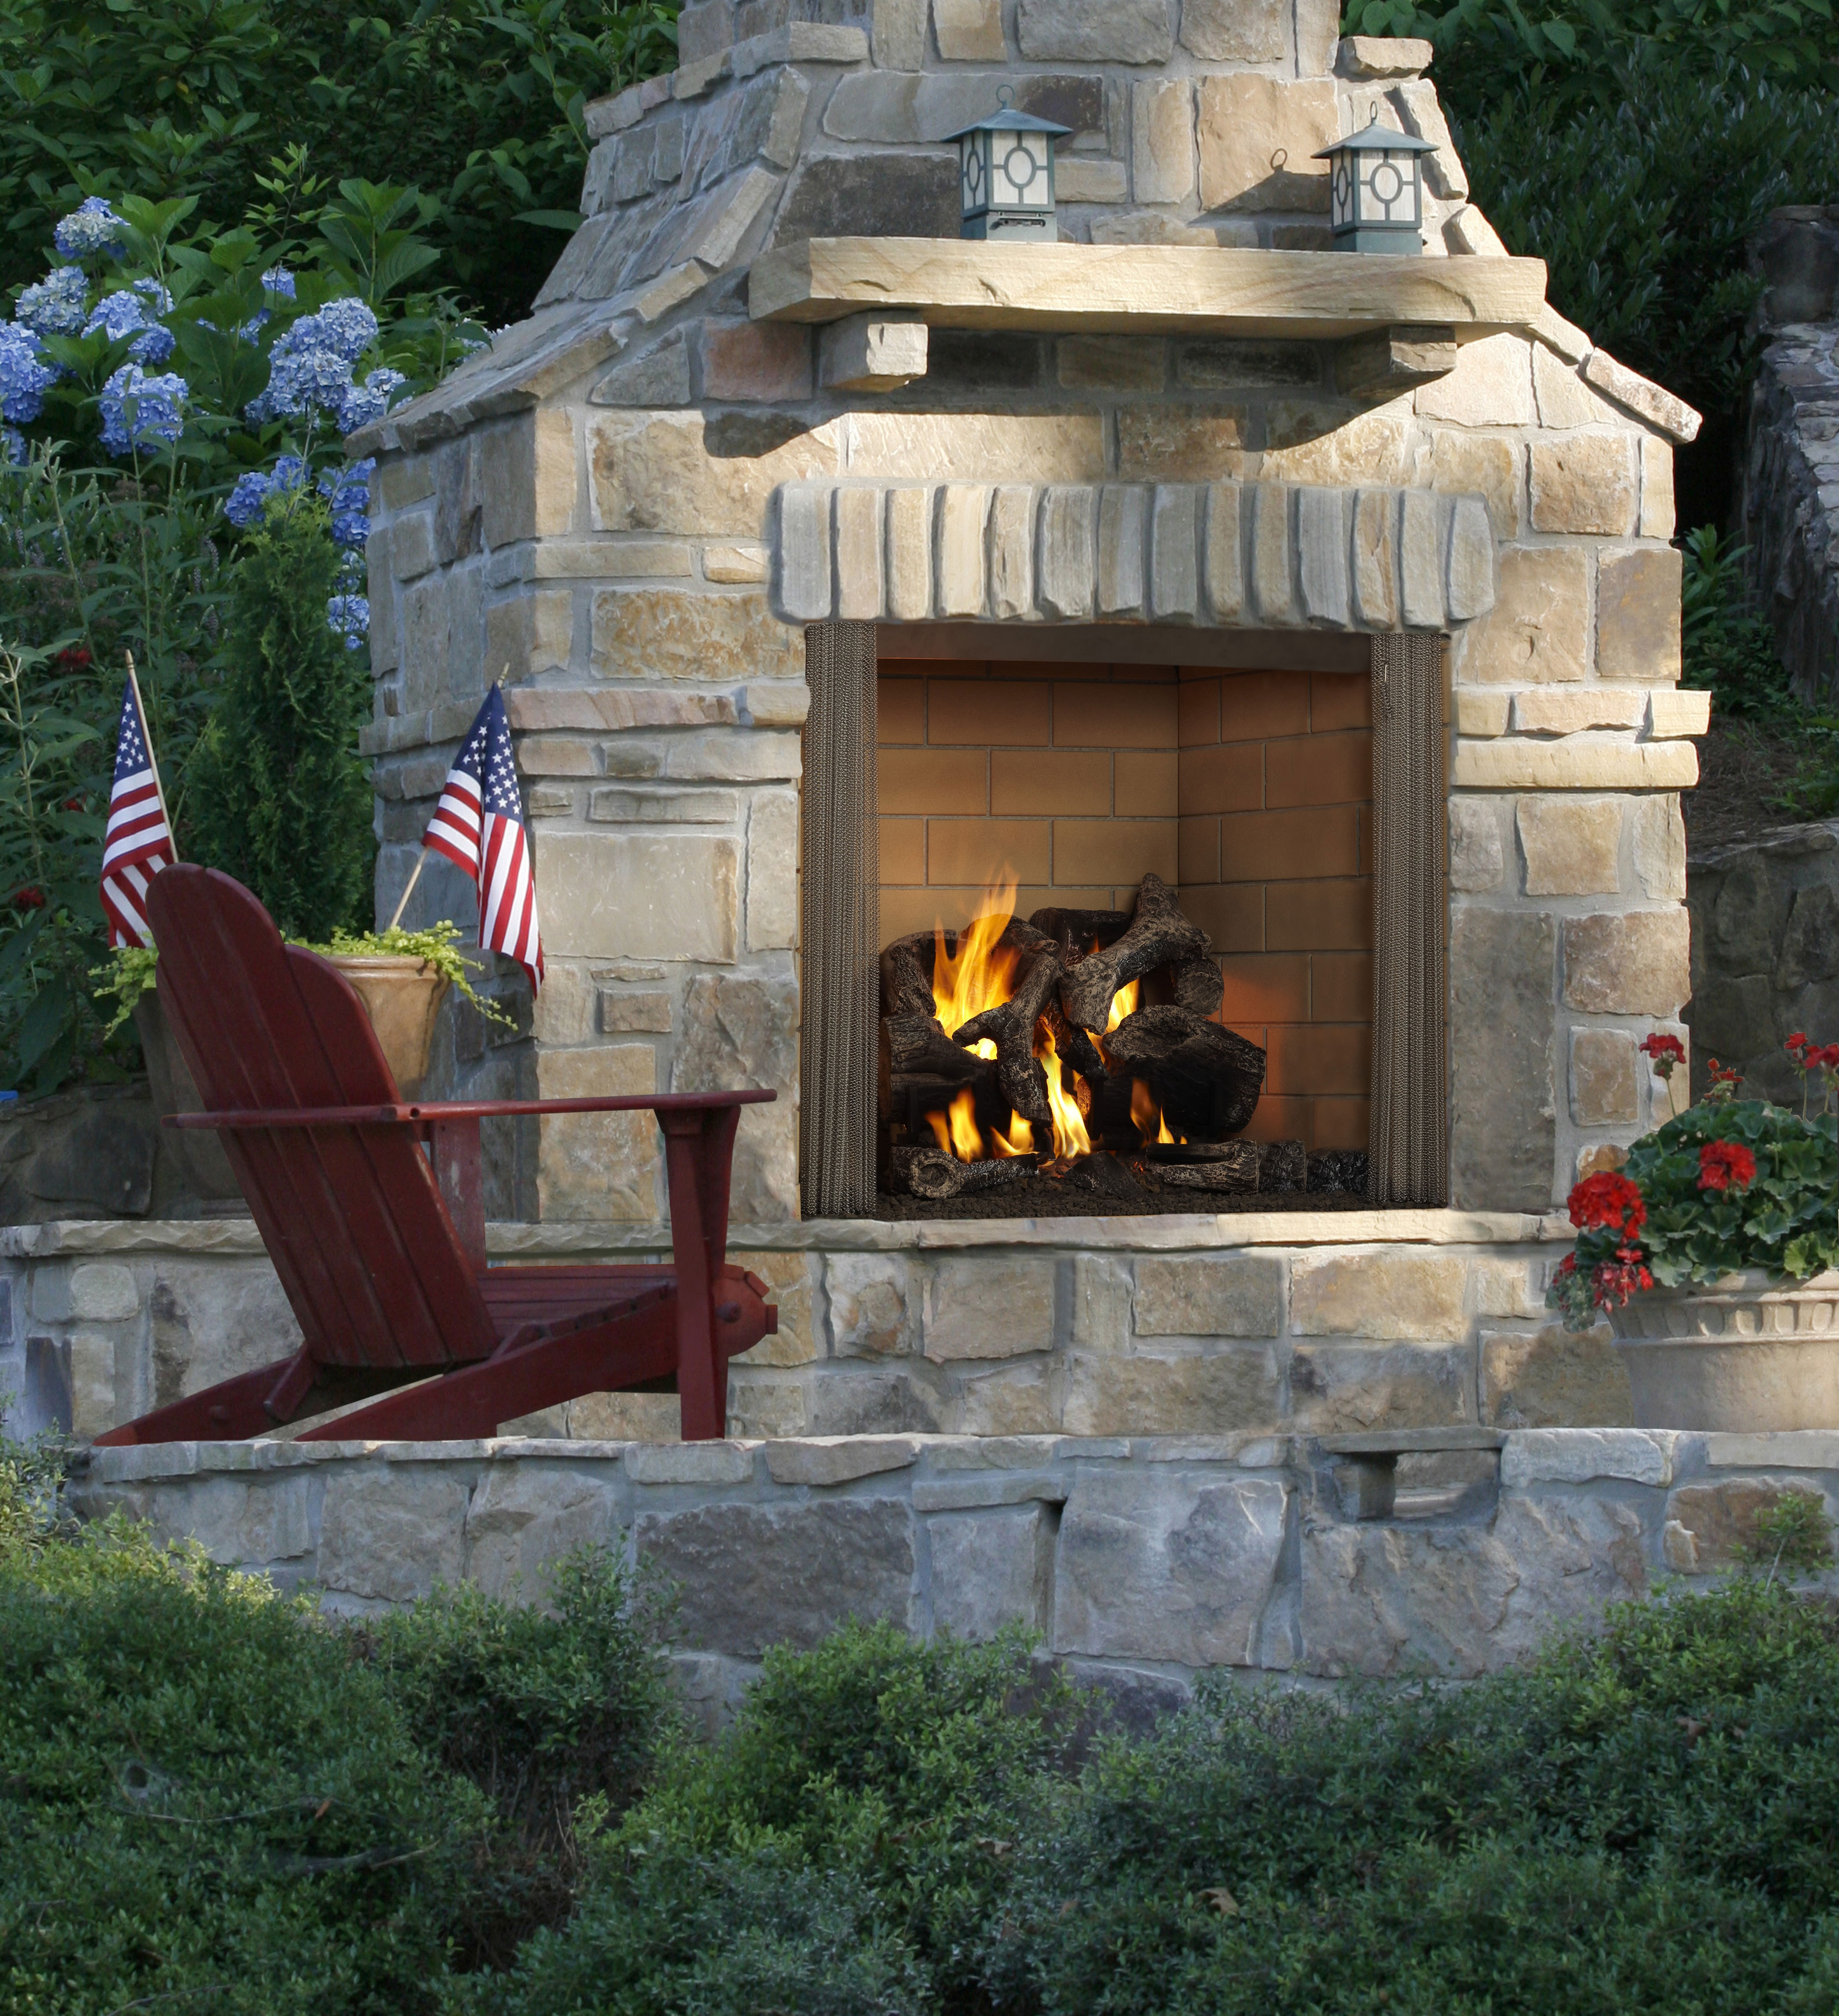 Castlewood outdoor fireplace